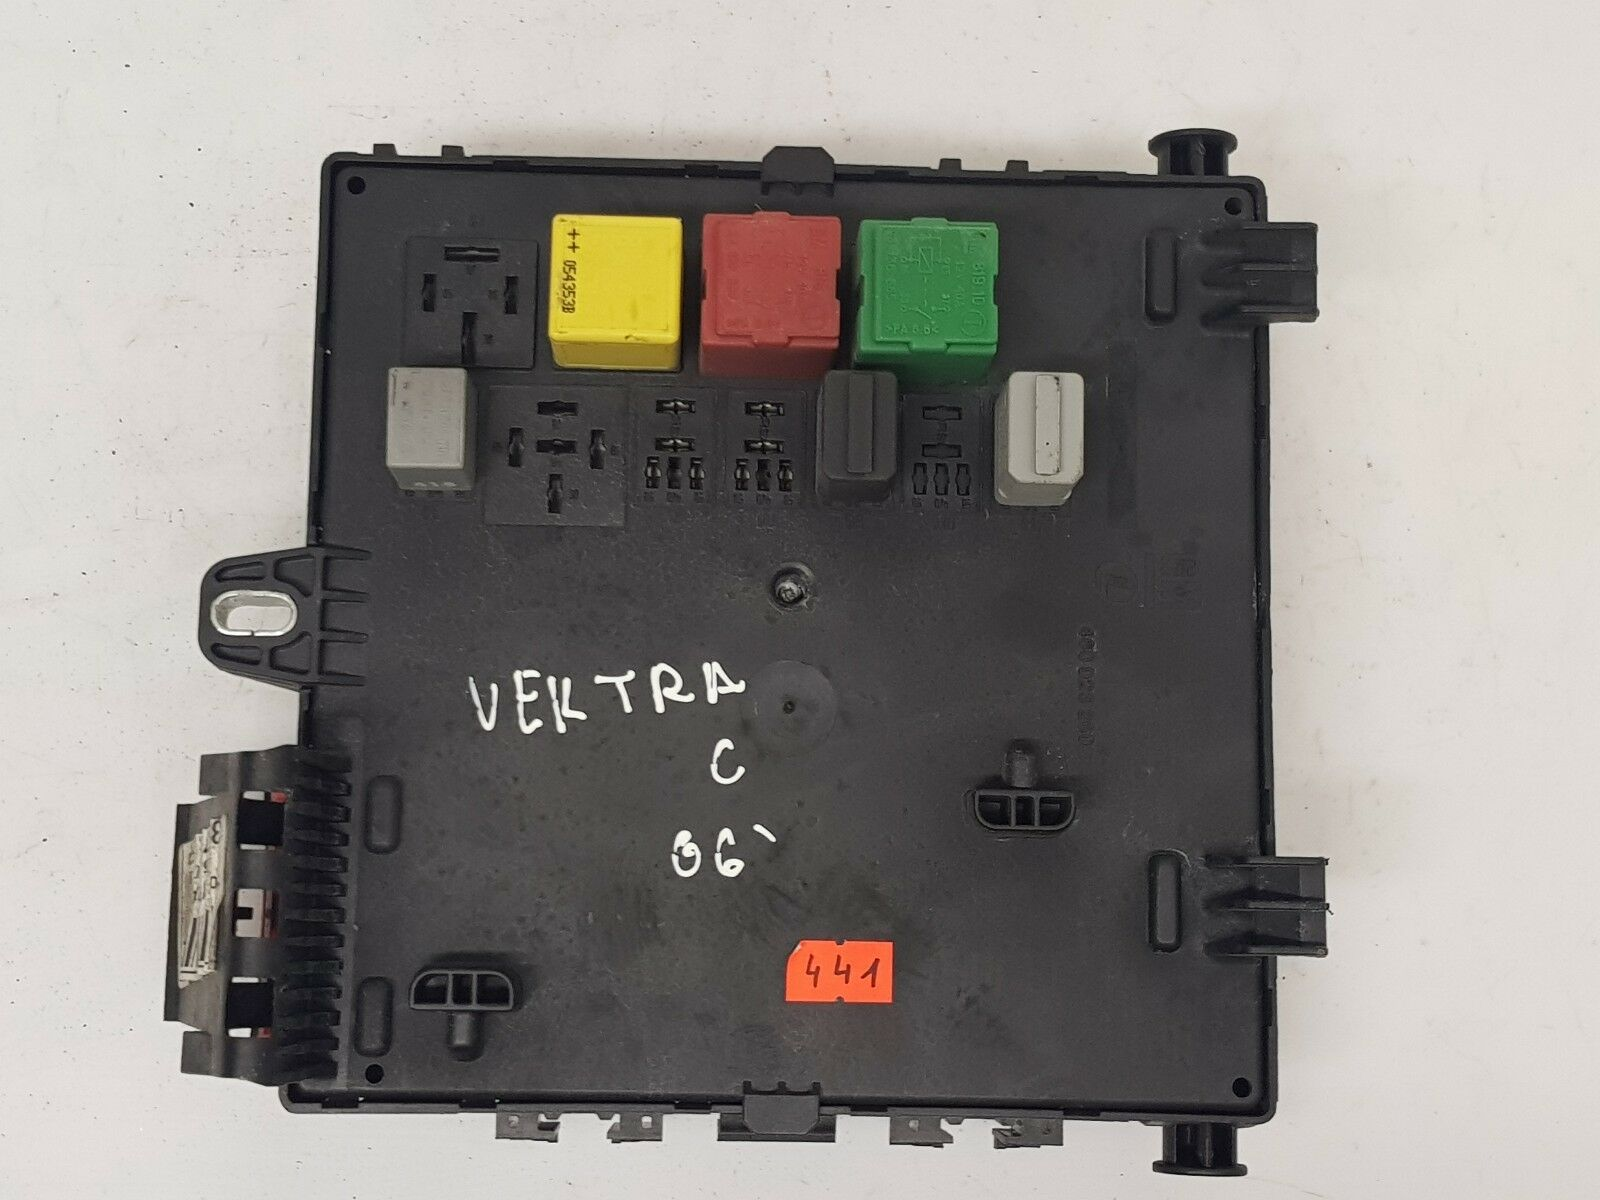 hight resolution of opel vauxhall vectra c 1 9 cdti fuse box and fuses oem 13205774